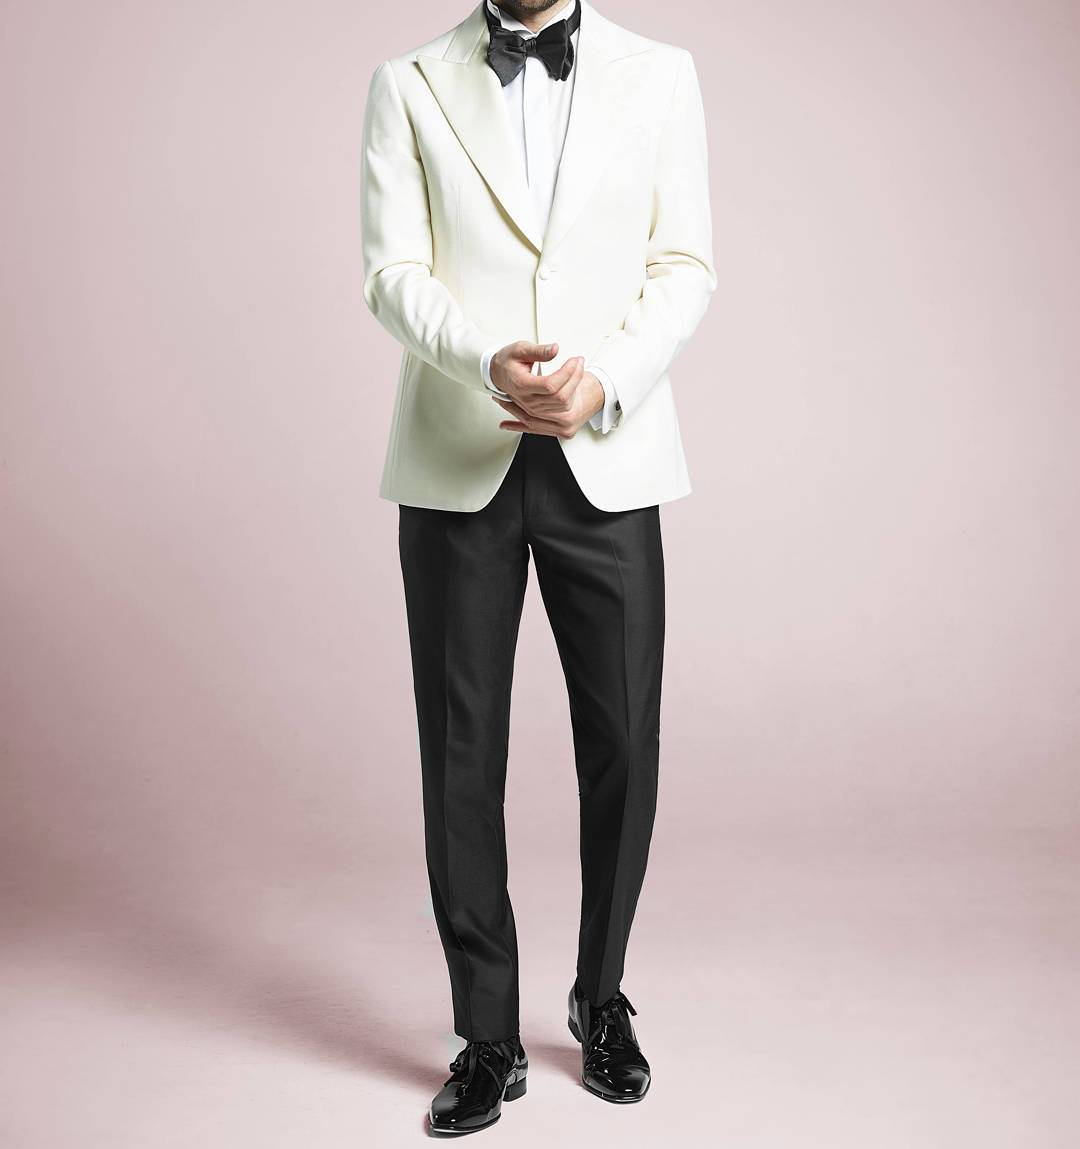 Tailor made wedding suit 2